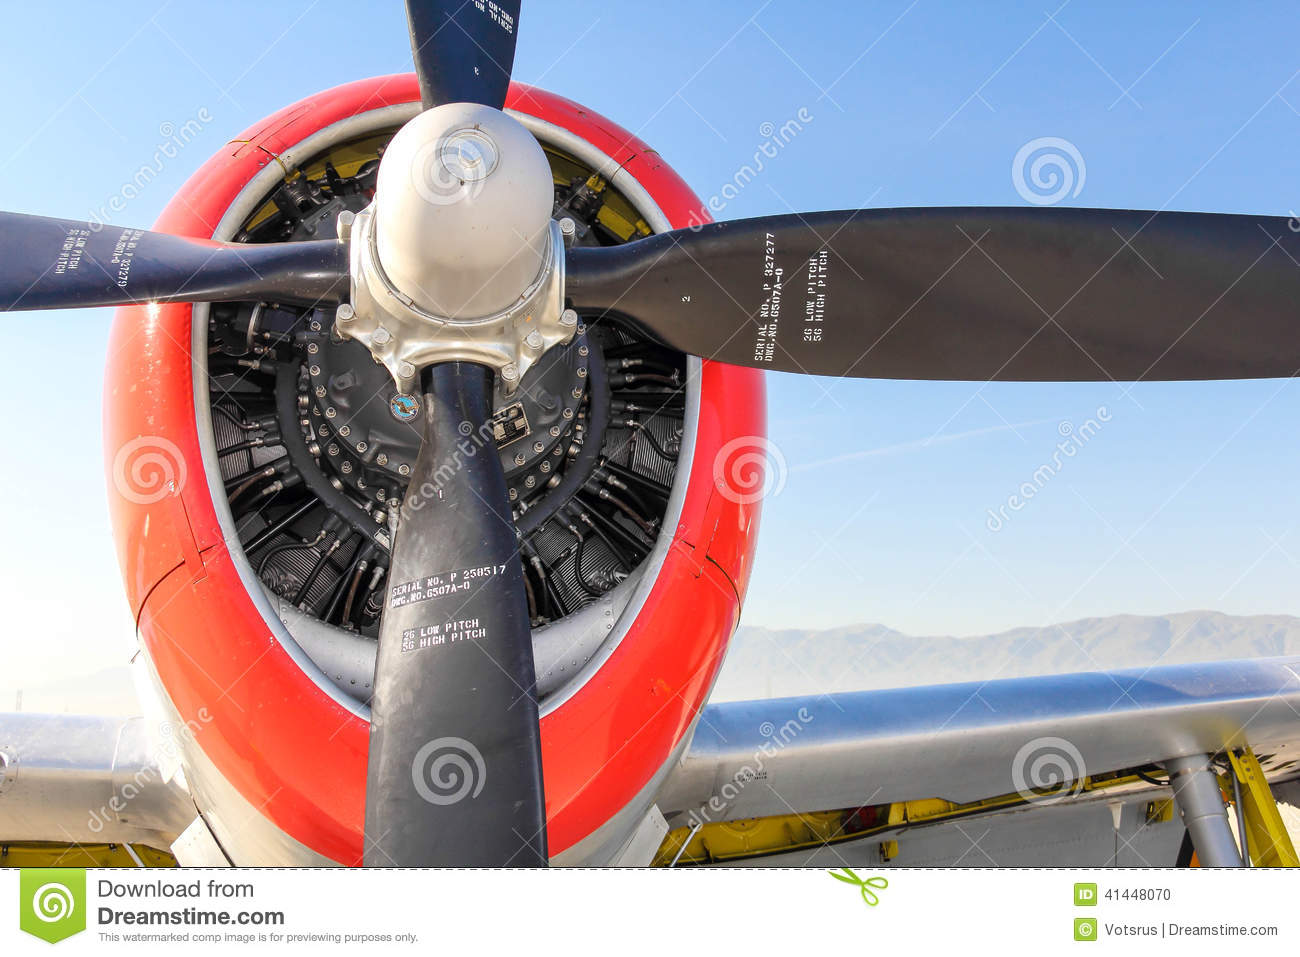 47 Thunderbolt Propeller Stock Photo - Image: 41448070